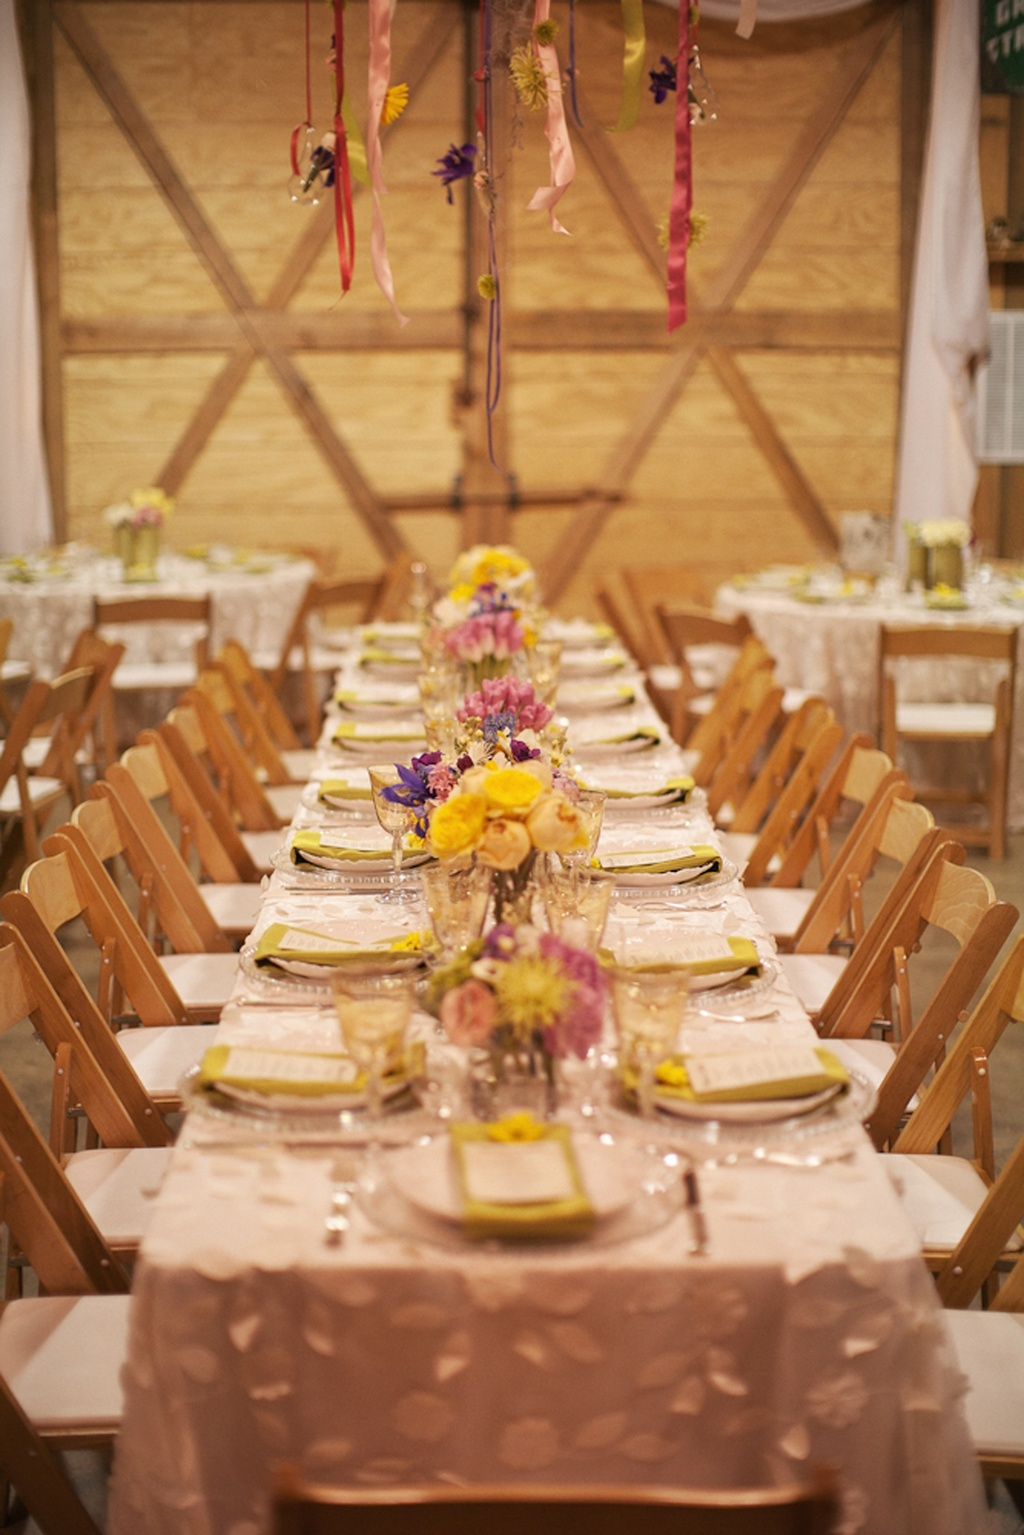 Real-wedding-reception-tablescape-spring-weddings-outdoor-venue.full